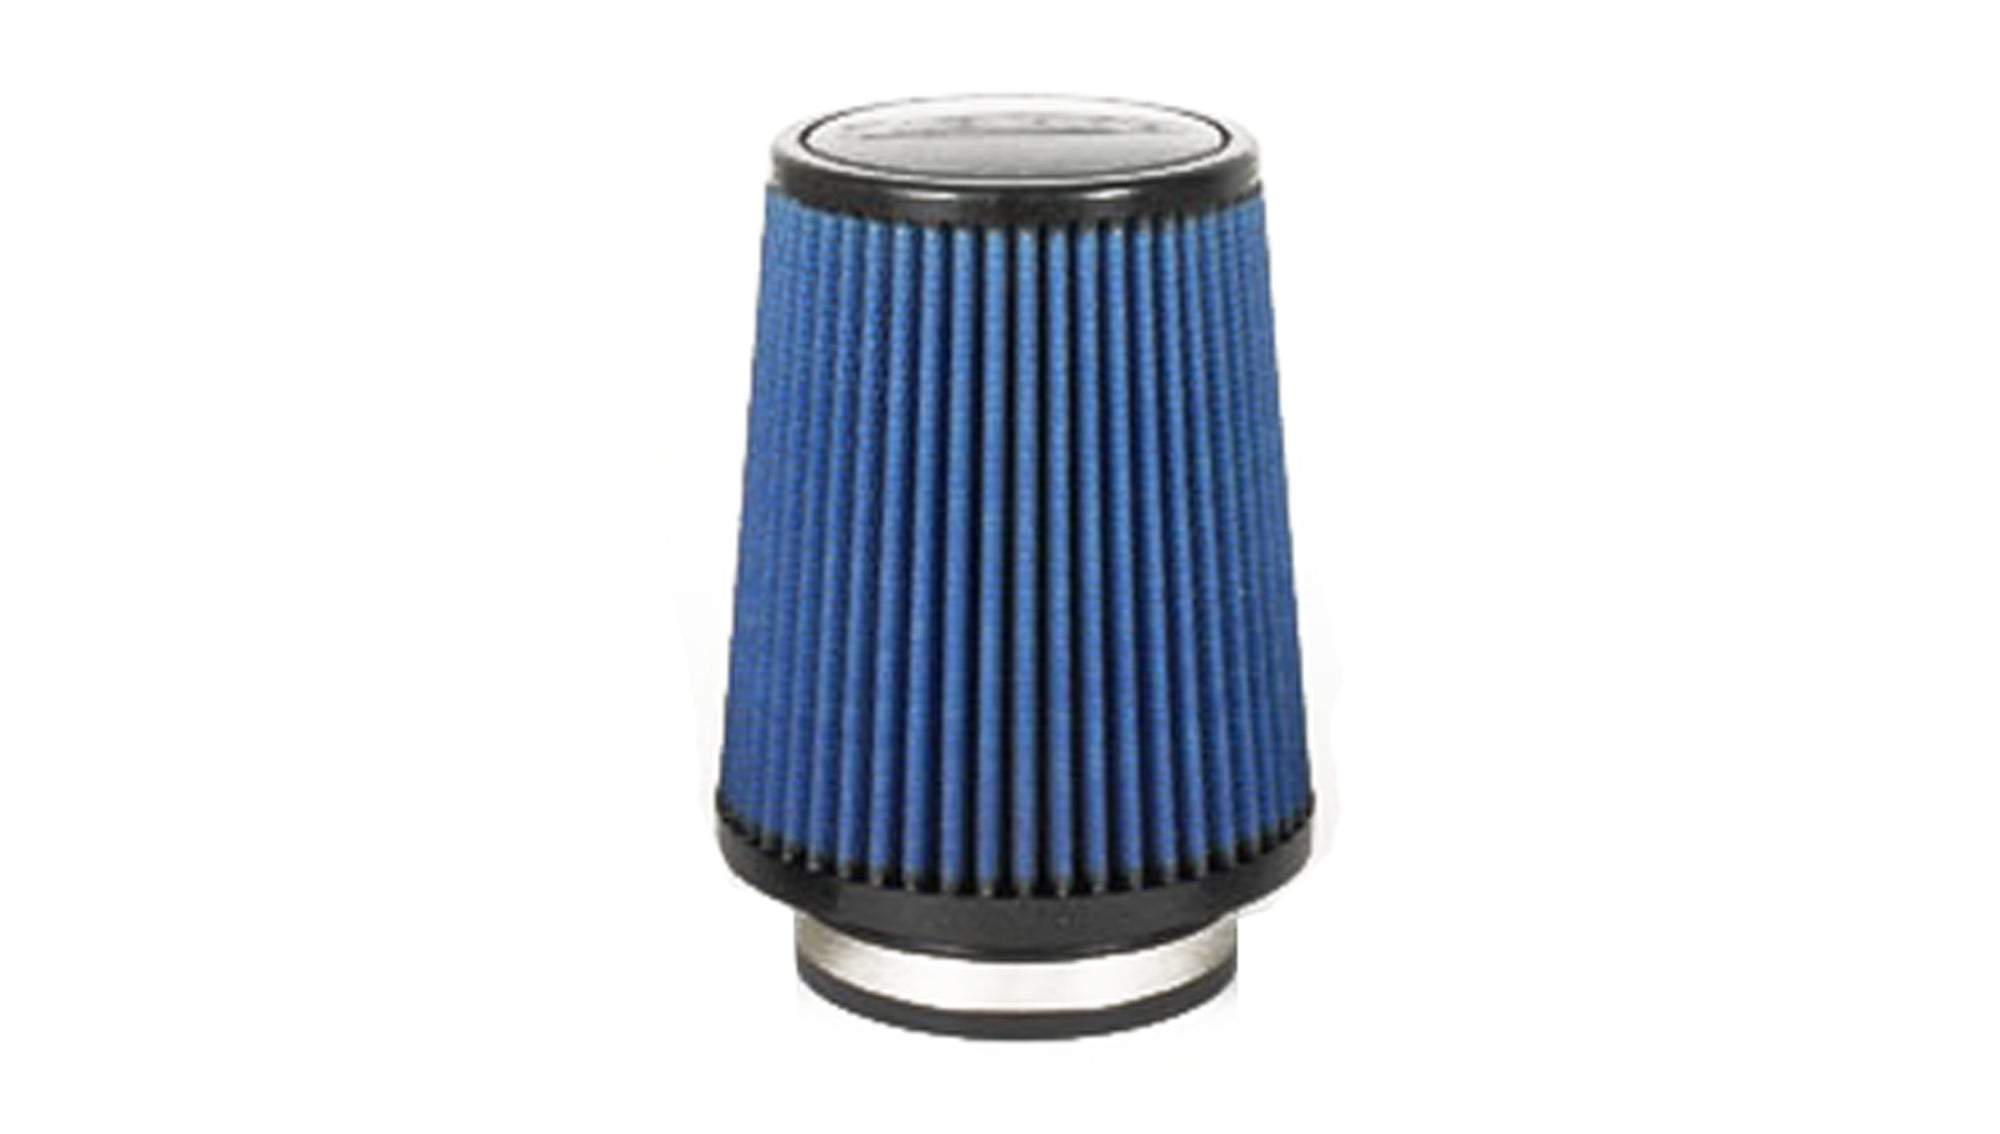 1999-2000 Cadillac Escalade Oiled Filter - 5111